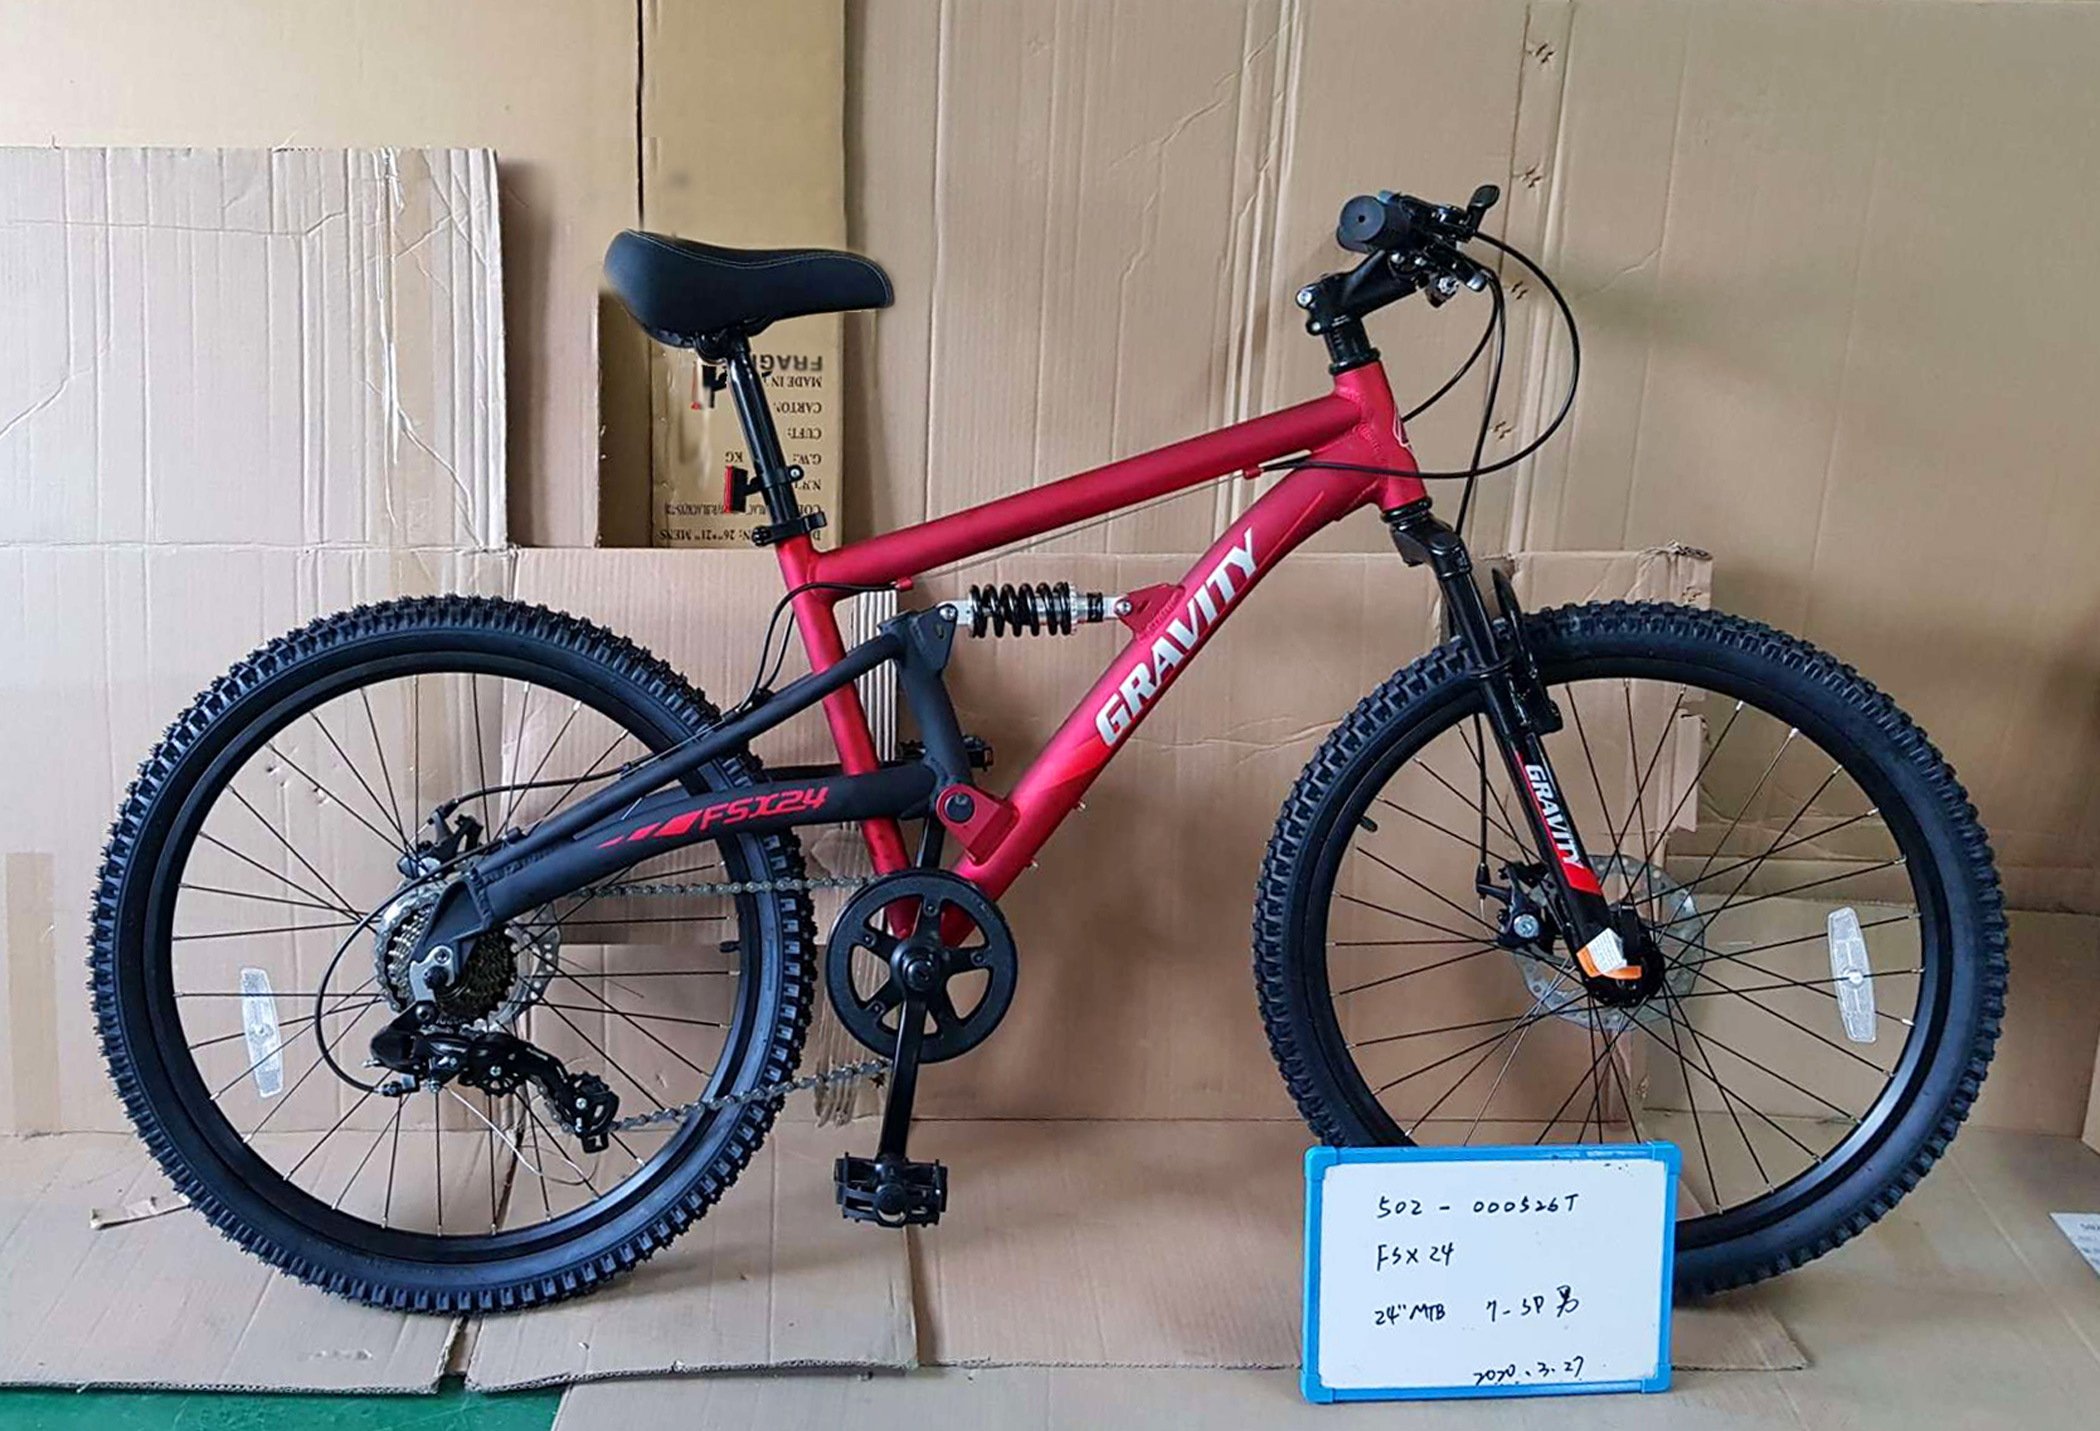 Bikes Gravity FSX 24Shimano Multi Speed FULL Suspension Kids Mountain Bike Image